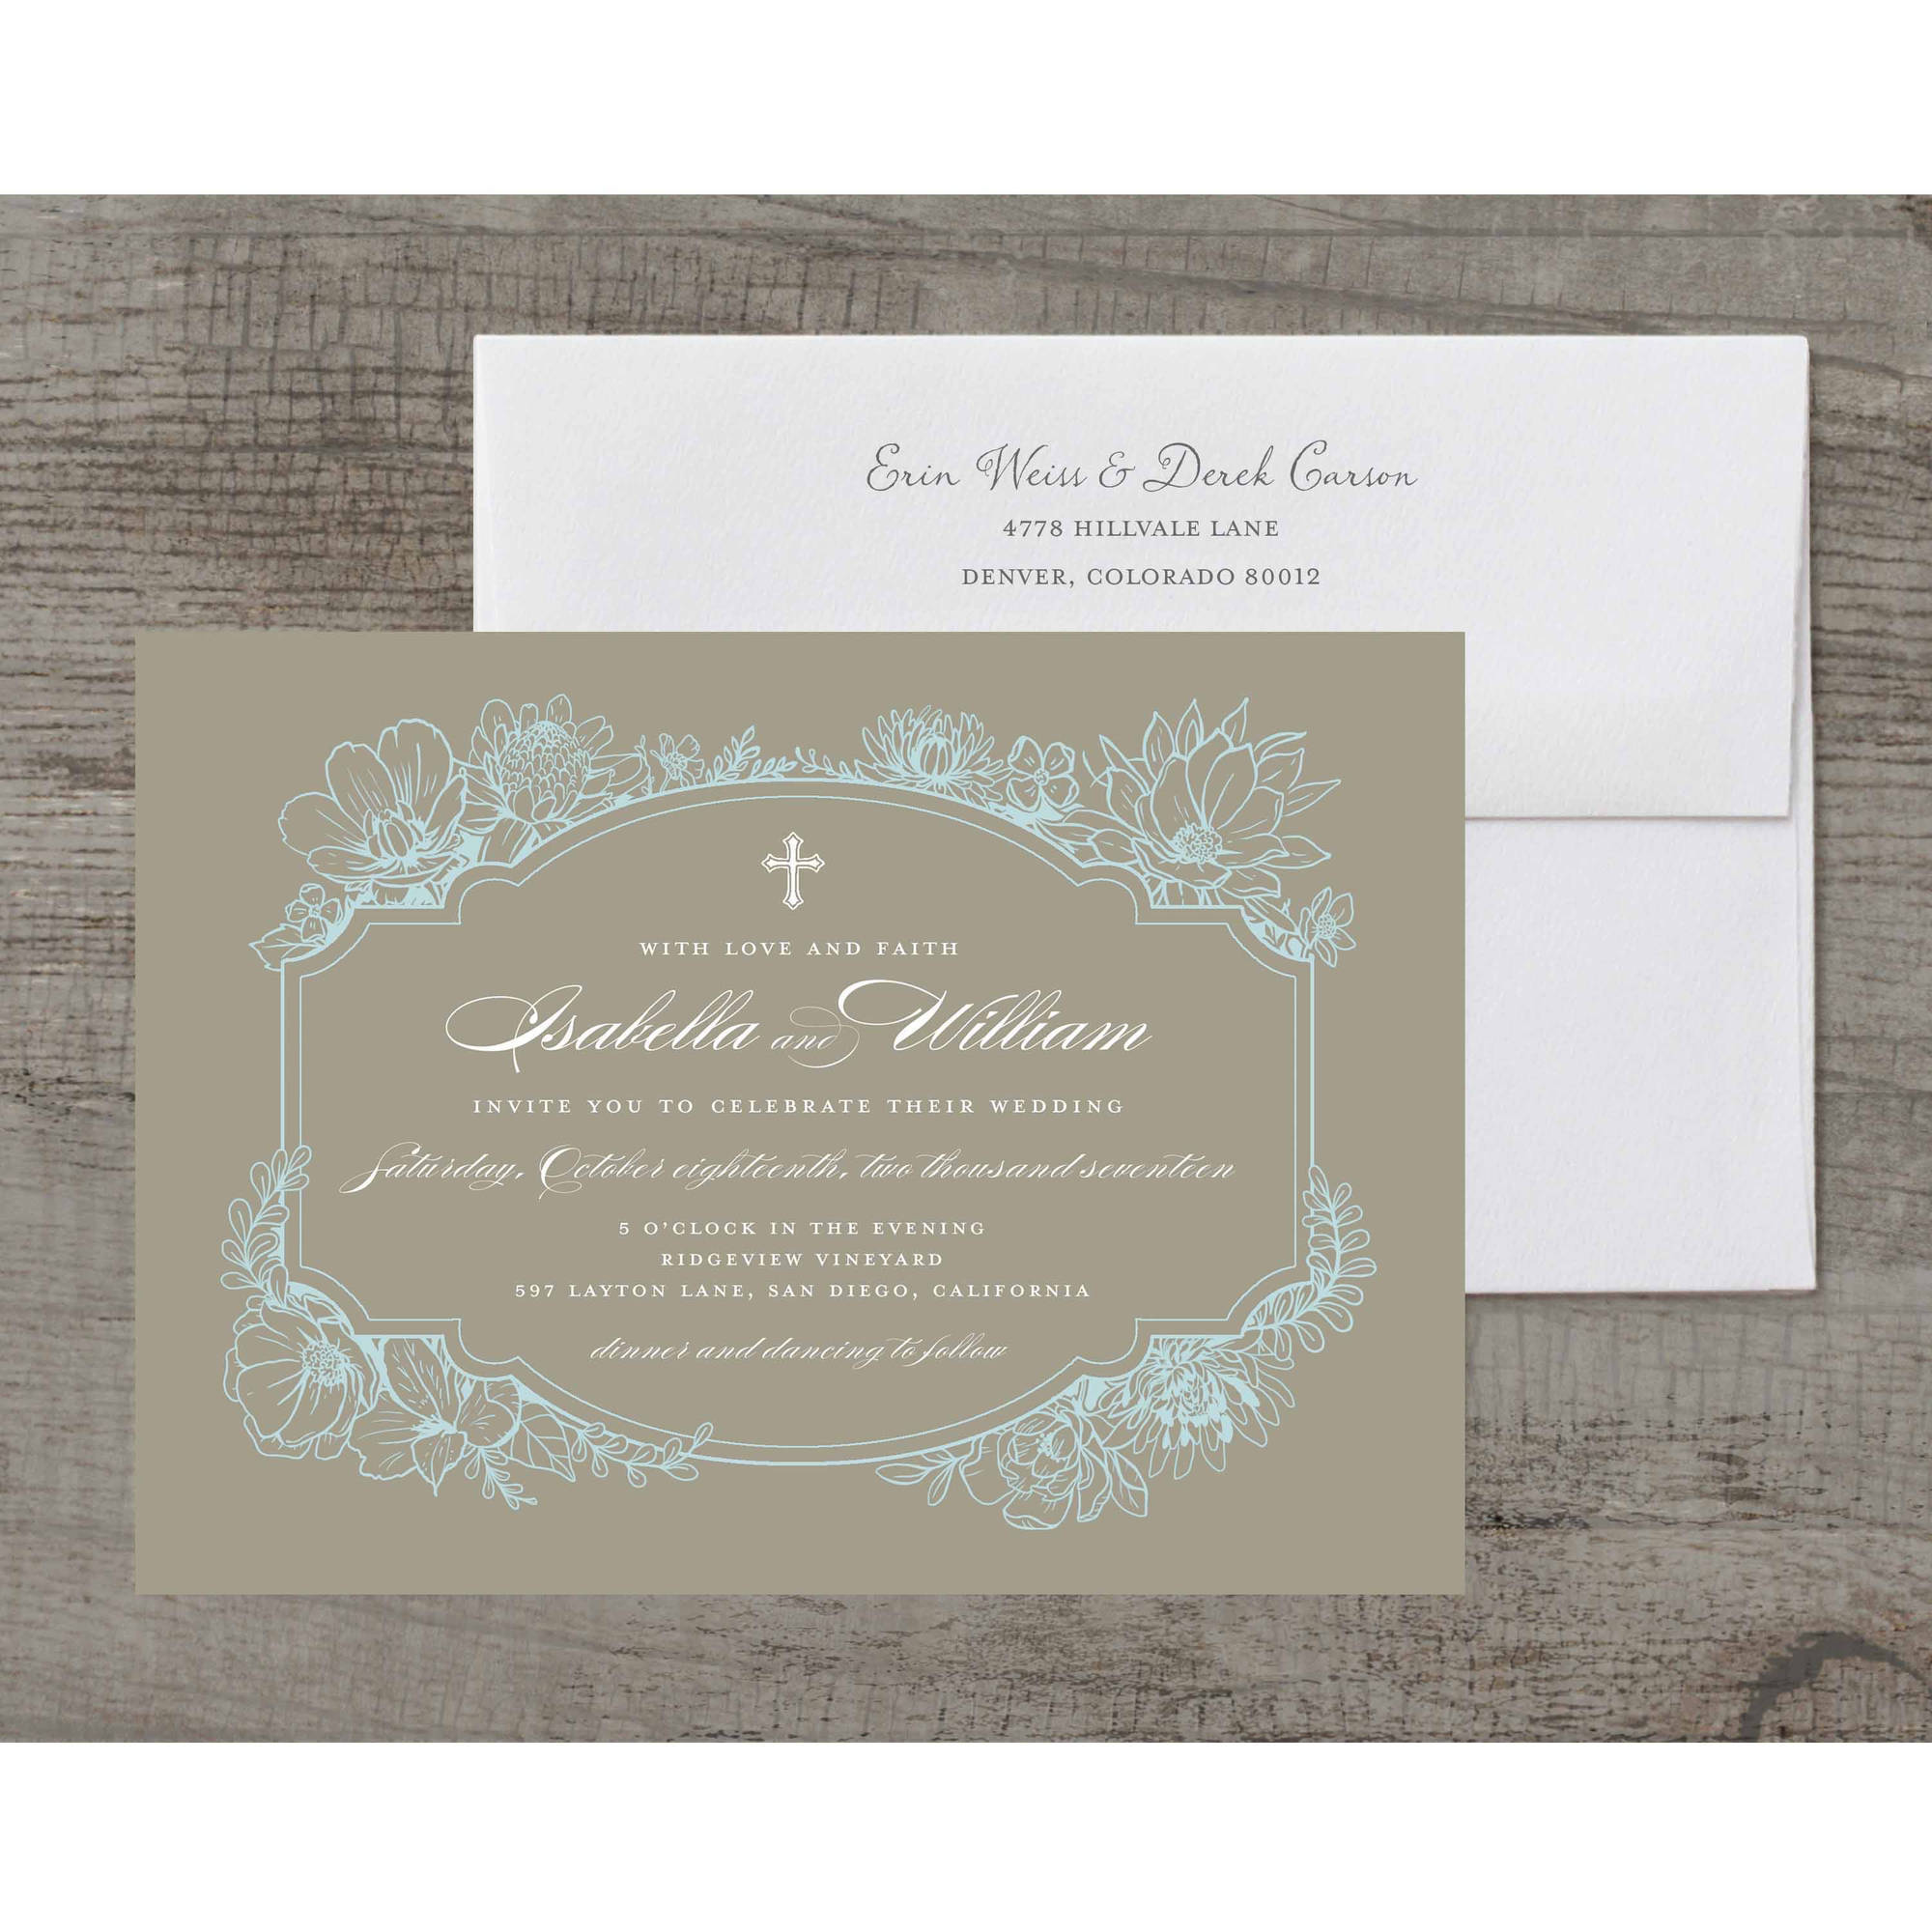 Rustic Garden Deluxe Wedding Invitation